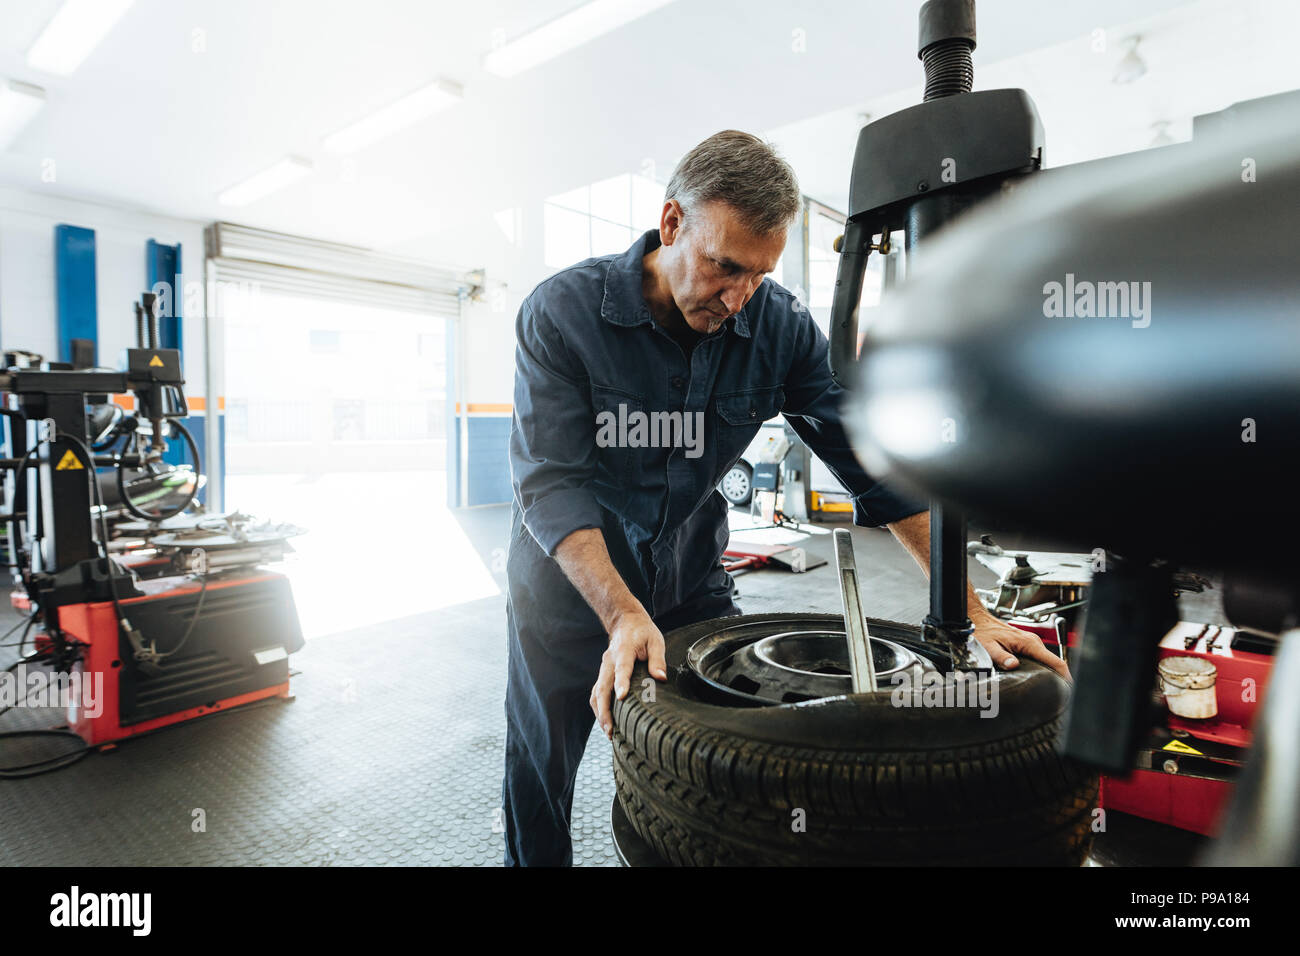 Mature man working in tire service workshop. Mechanic removing tire from wheel on machine. - Stock Image